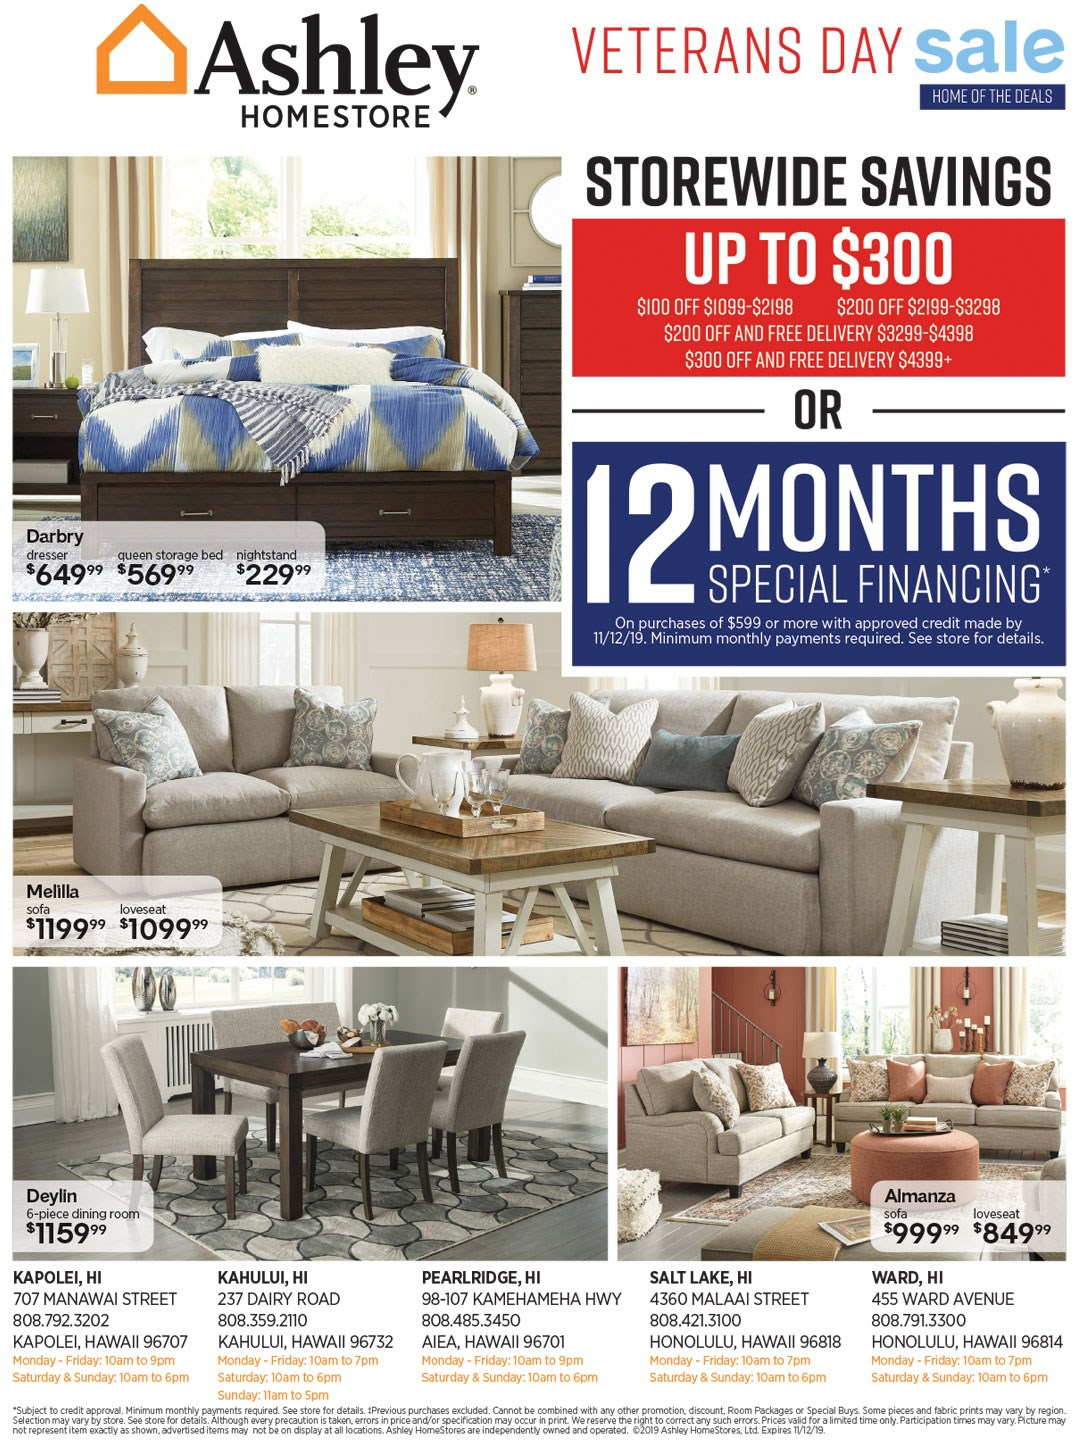 Storewide savings up to $300 or ask about 12 months financing; see store for details